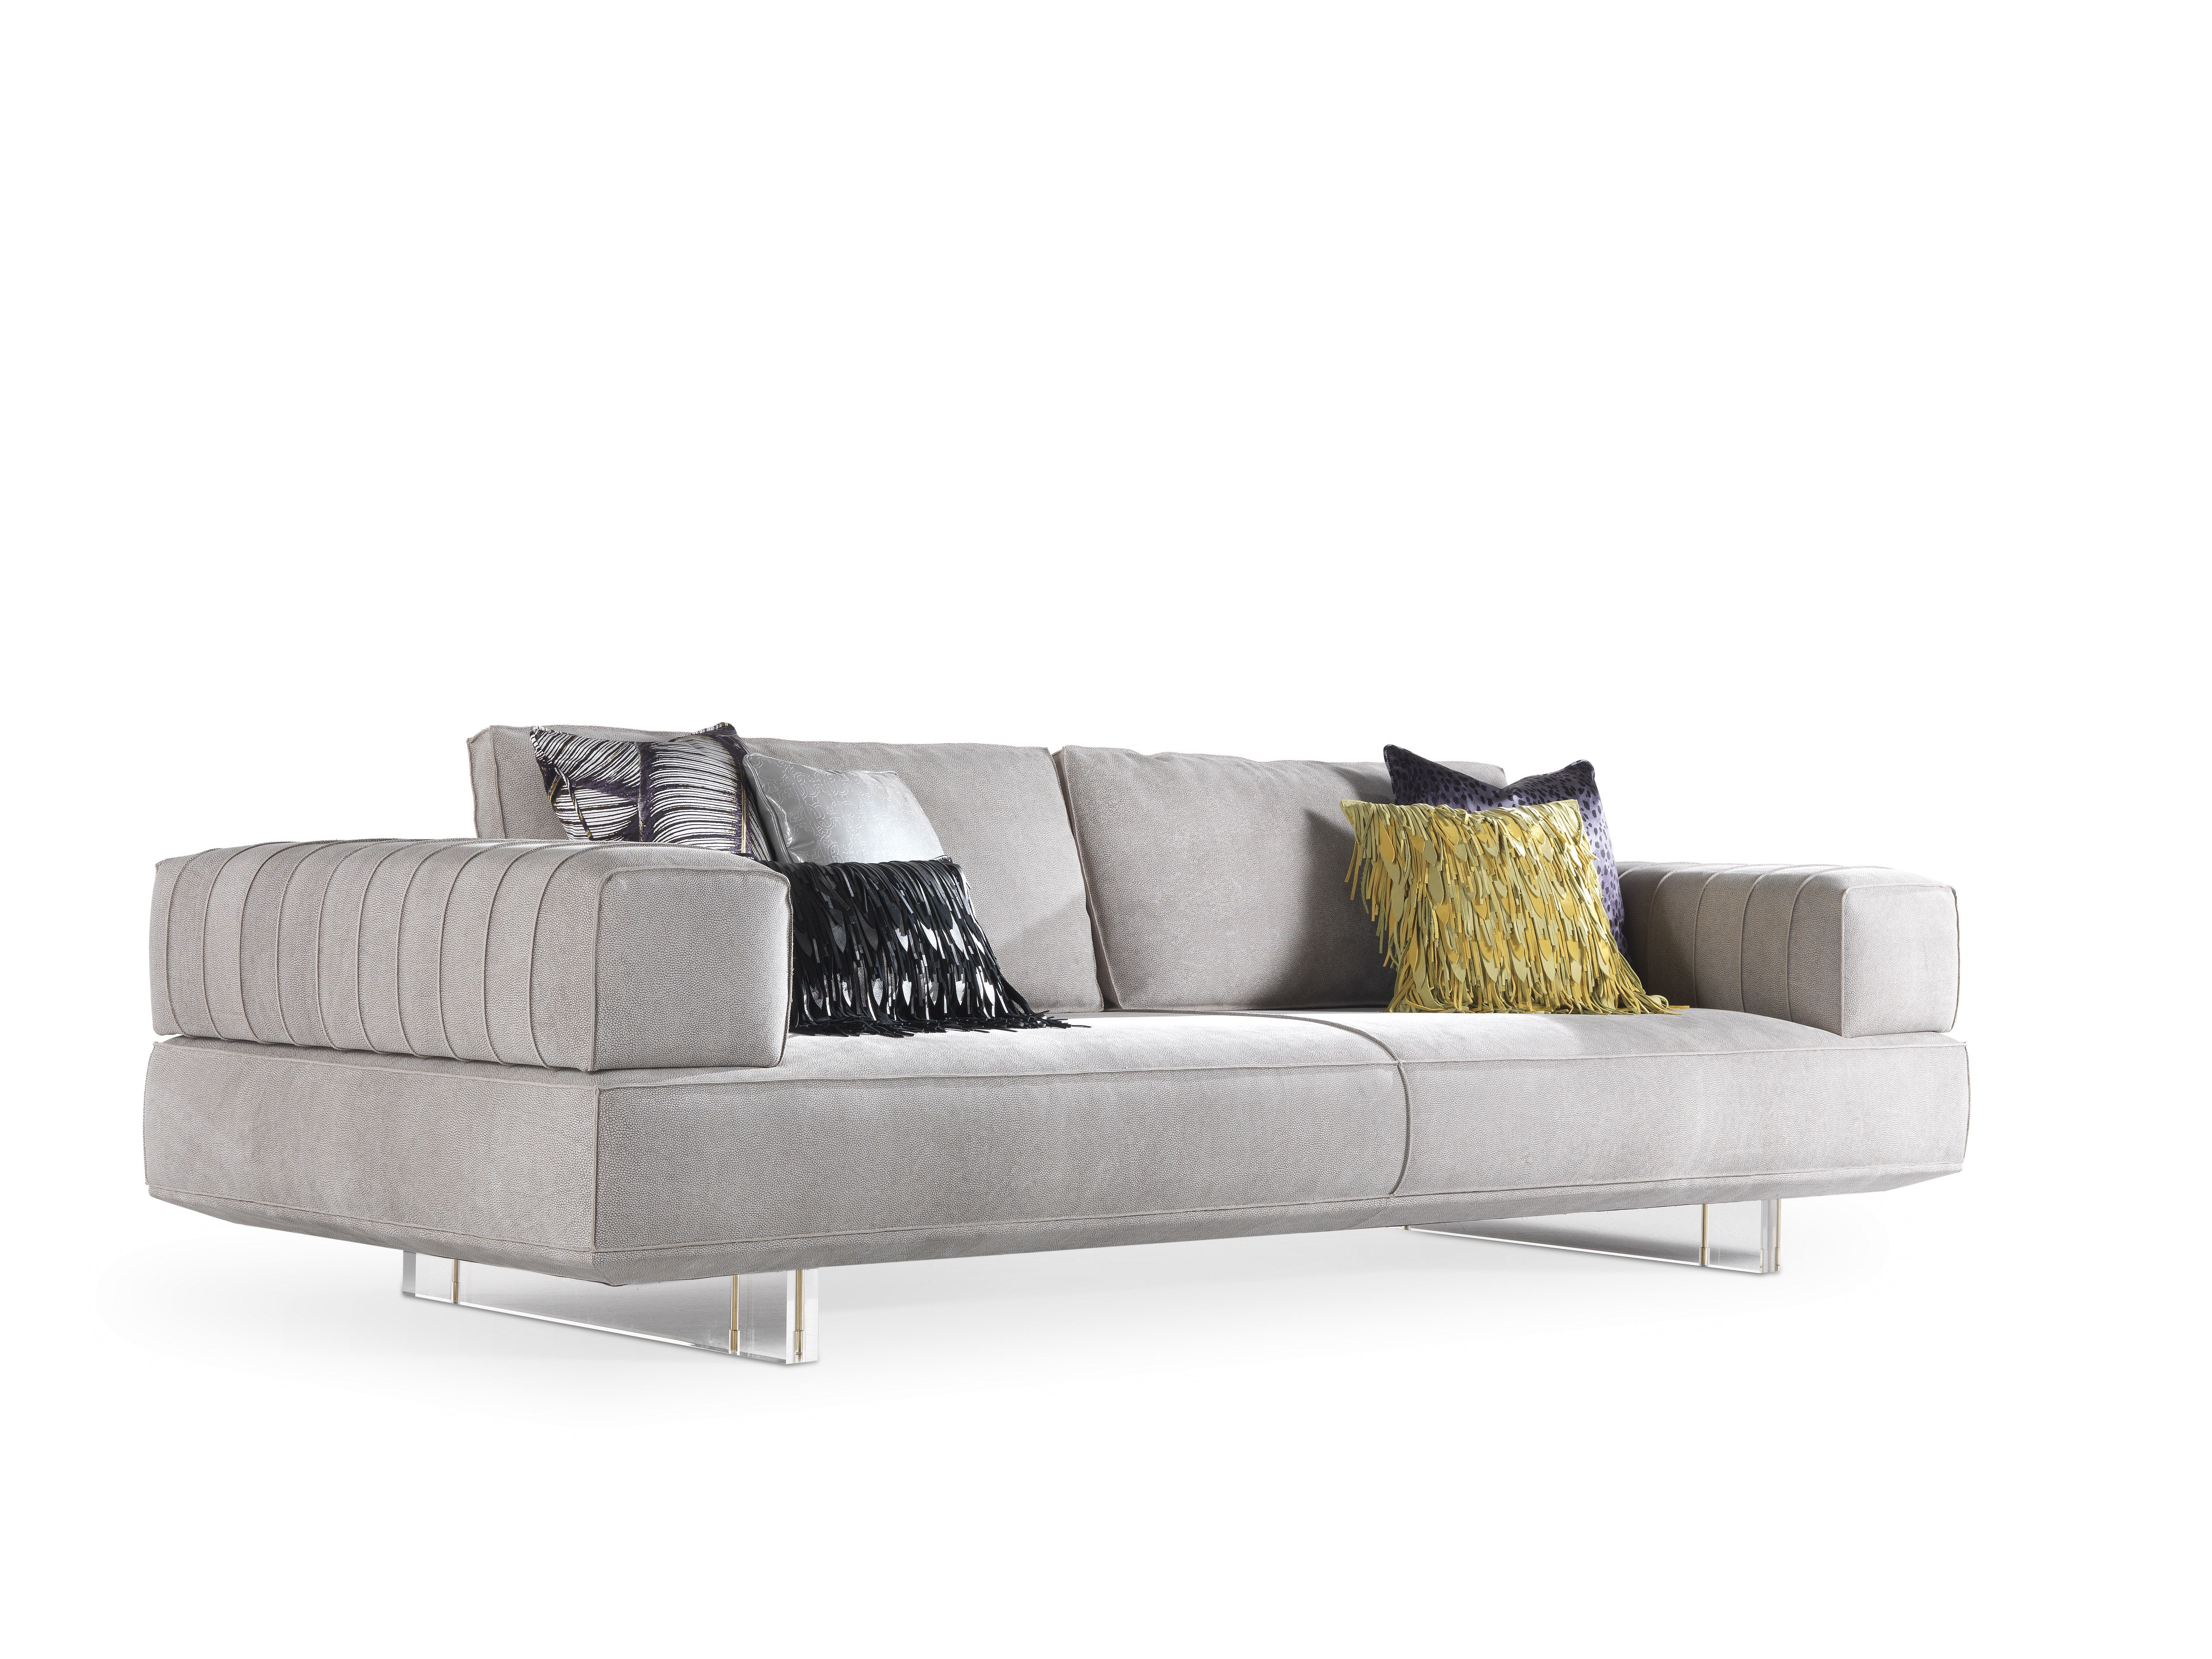 The Roberto Cavalli Aruba Sofa Available Exclusively At Kings Of Chelsea For More Information Contact Info Kofc Co Uk Furniture Sofa Kitchen Furniture Design